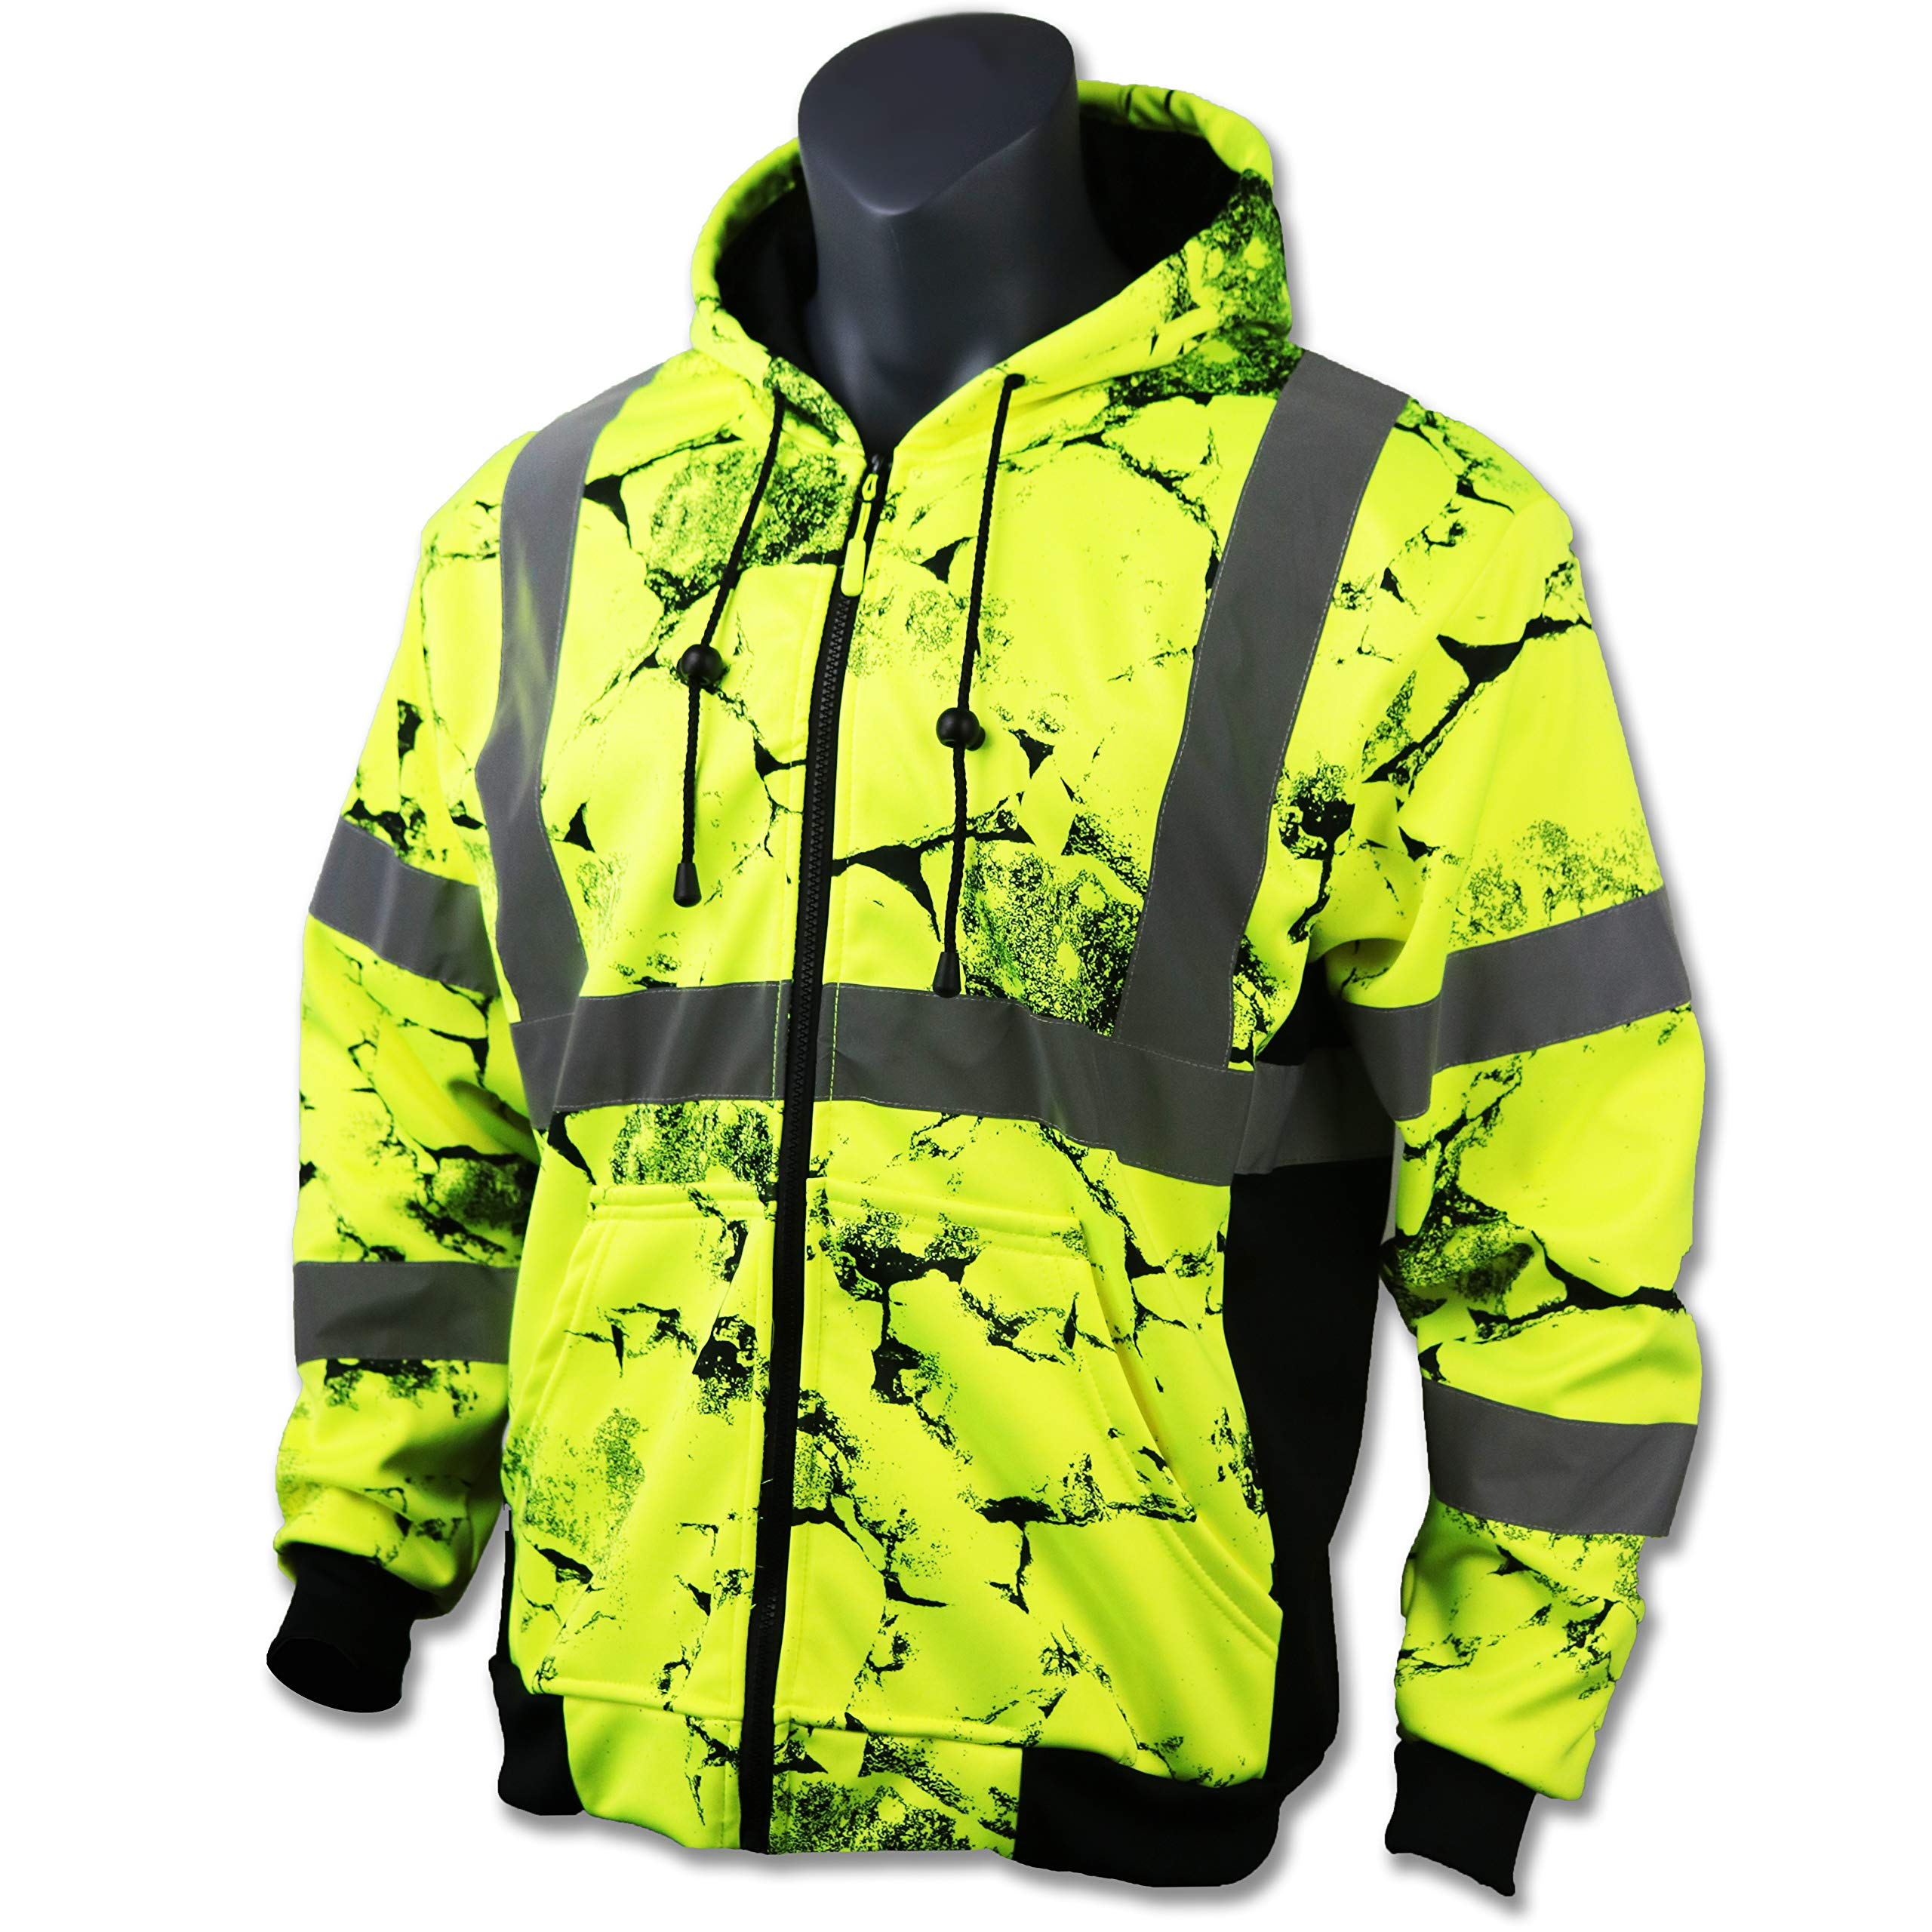 KwikSafety UNCLE WILLY'S WALL High Visibilty Reflective Anti Pill ANSI Class 3 Safety Jacket with Hoodie, Yellow, X-Large by KwikSafety (Image #1)